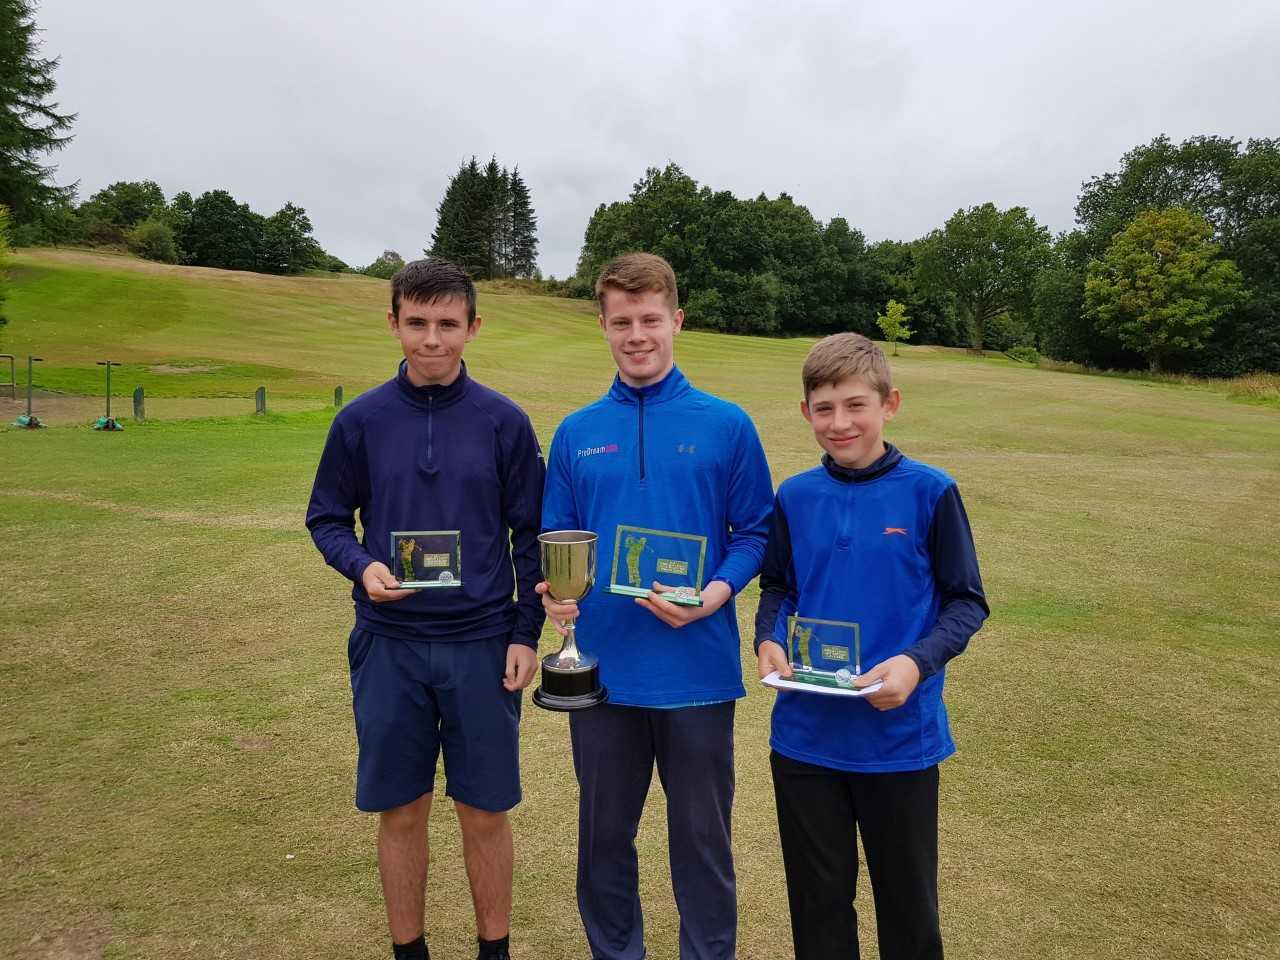 Pictured are Ross McKay (Handicap Winner - Gourock GC), Patrick McCartney (Scratch Winner - Greenock GC) & Alistair McNeill (Under 15s Winner - Skelmorlie GC).